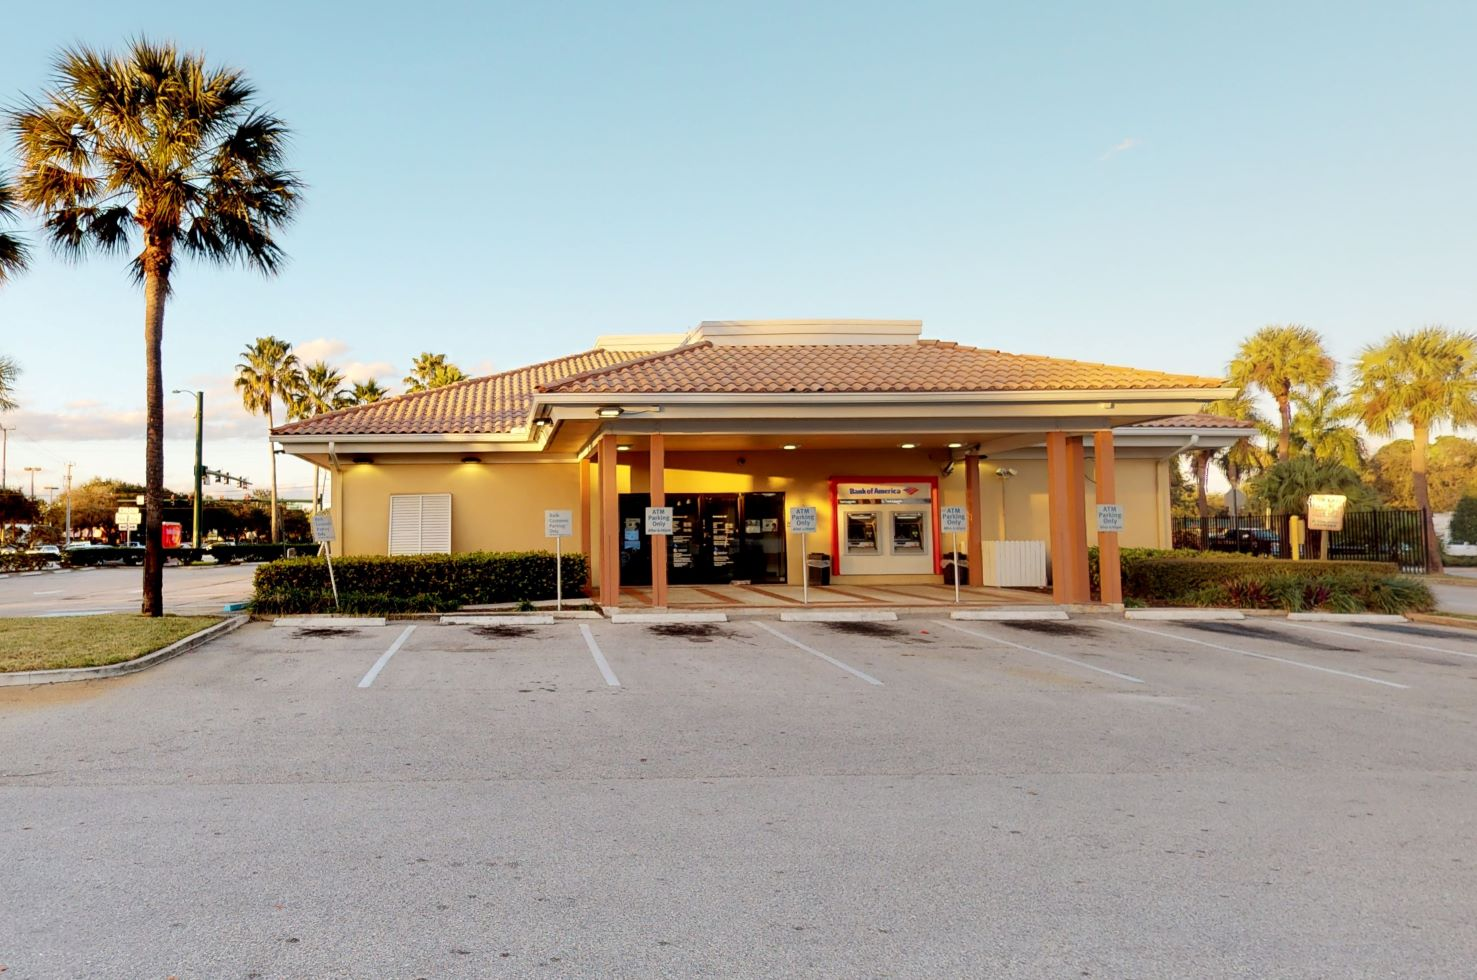 Bank of America financial center with walk-up ATM | 6410 W Indiantown Rd, Jupiter, FL 33458